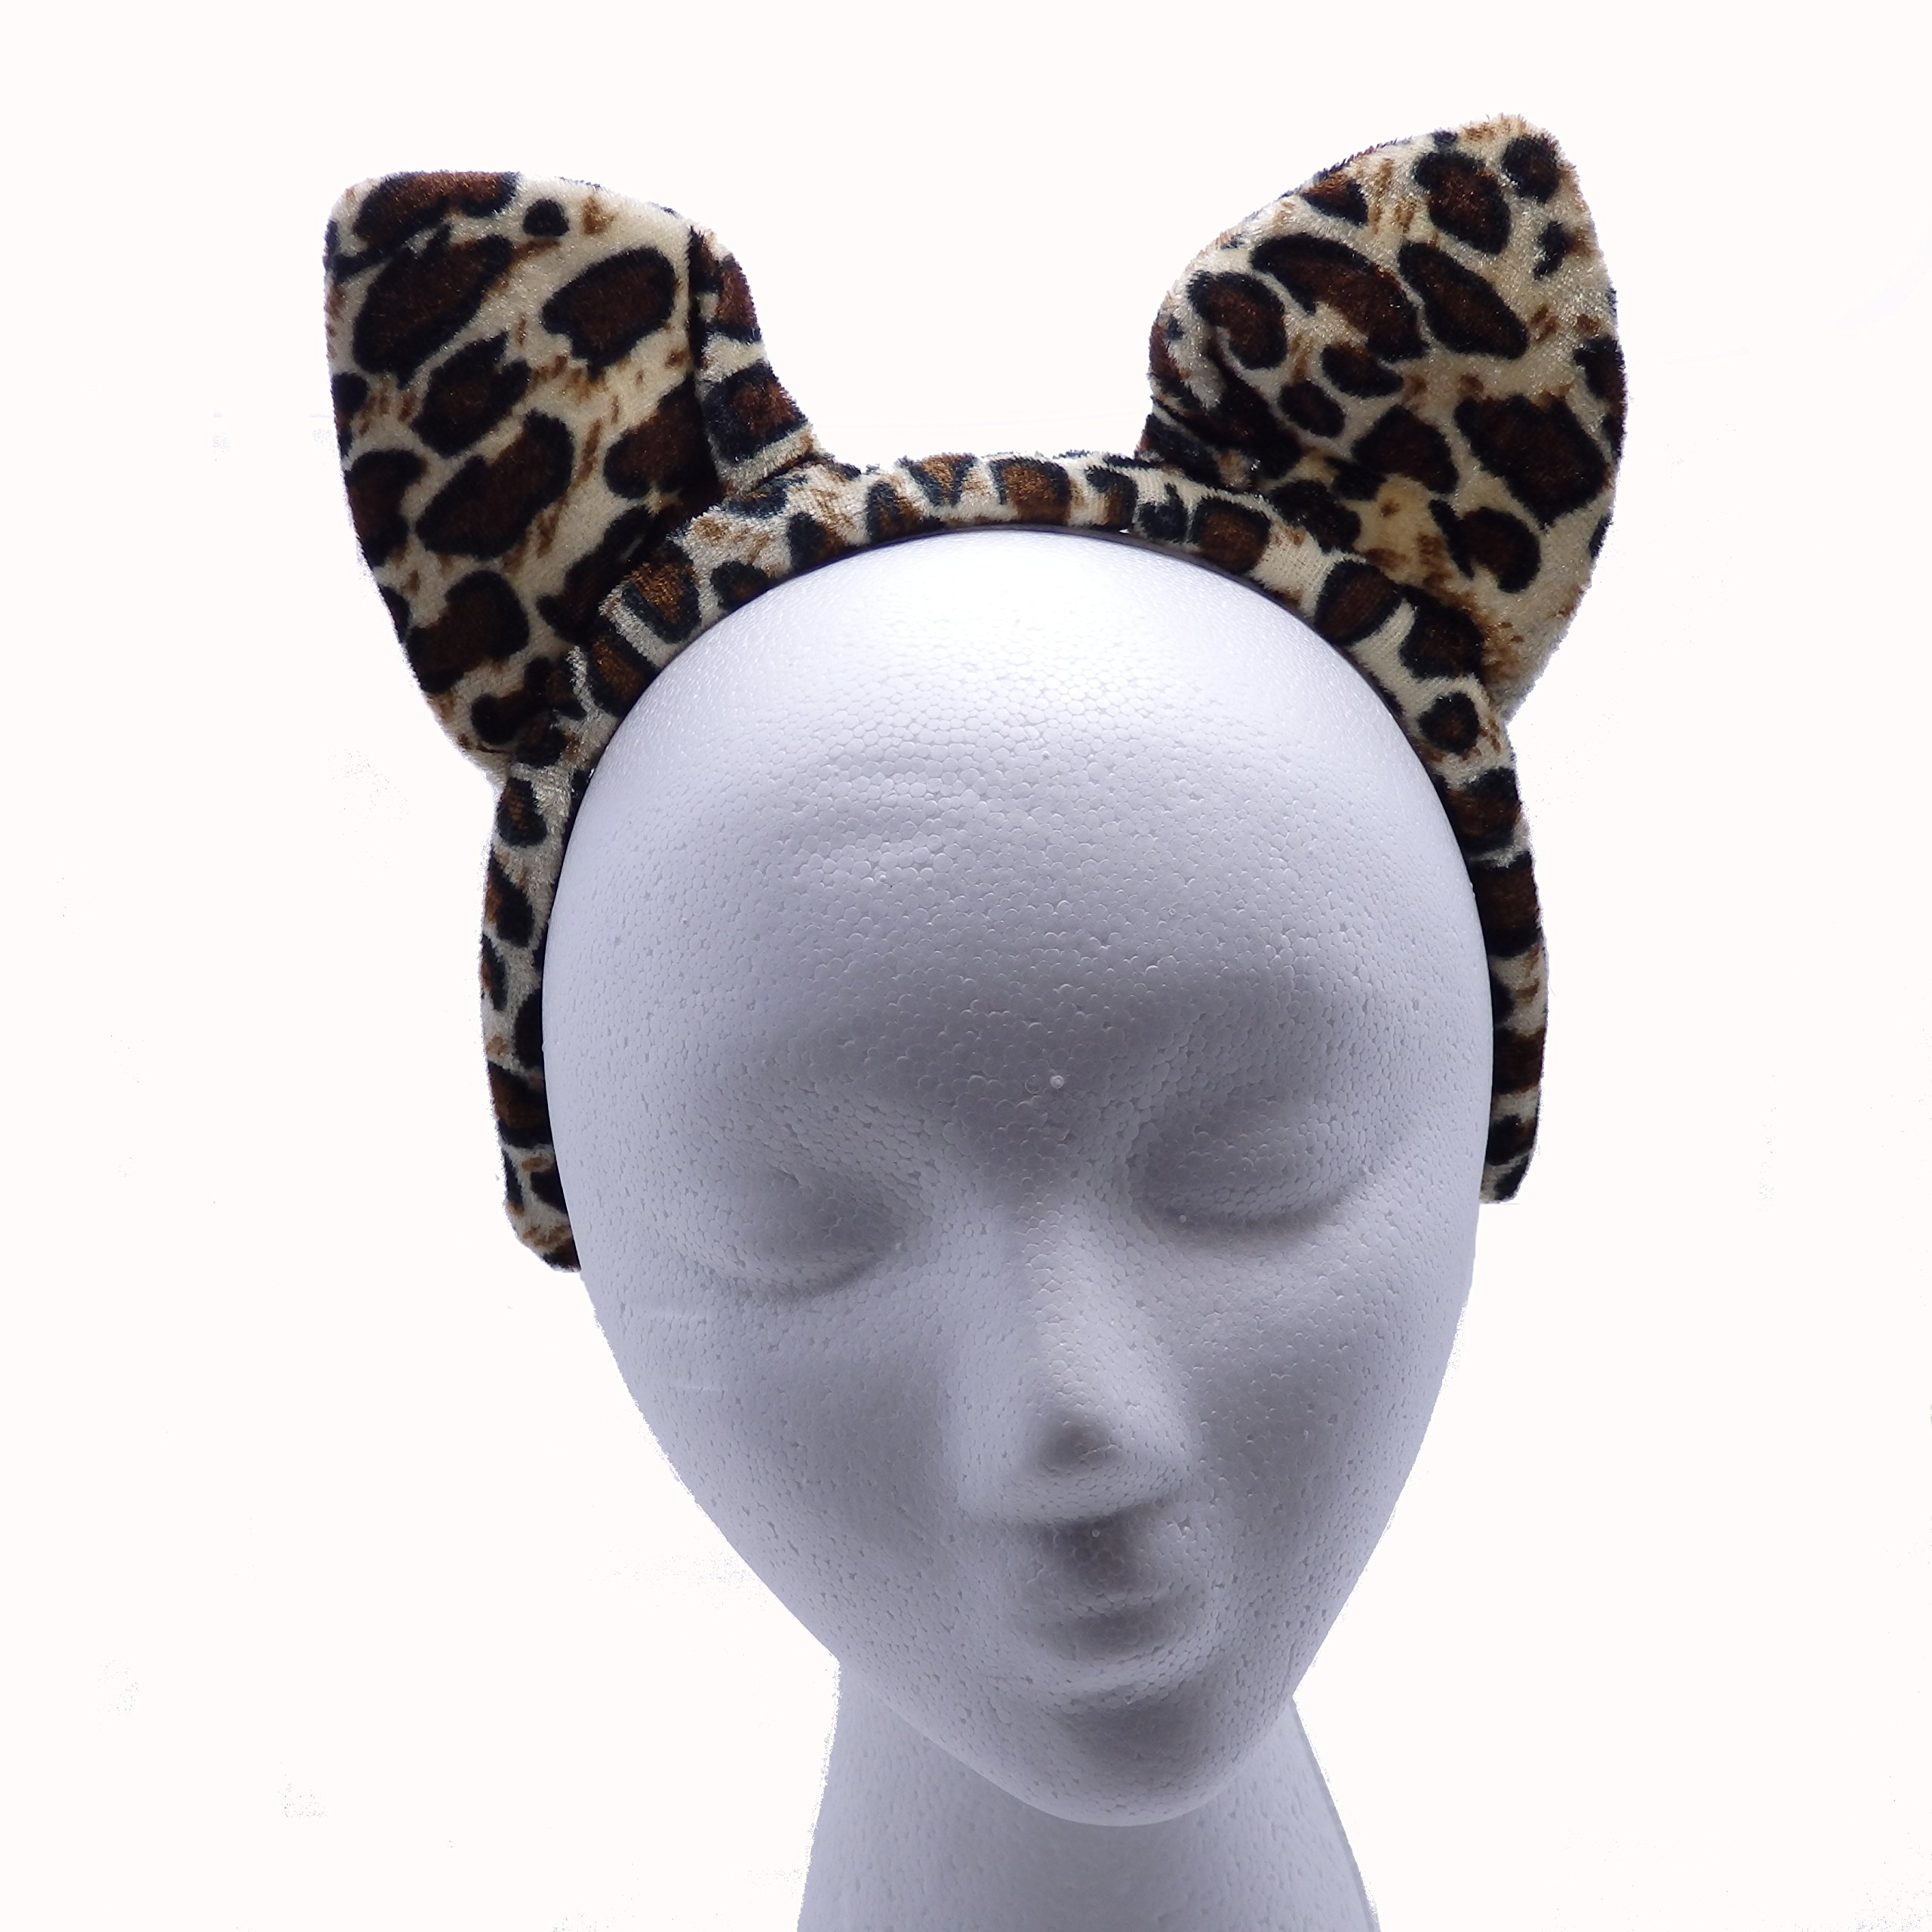 12 Plush Animal Print Ears with Plush Headbands